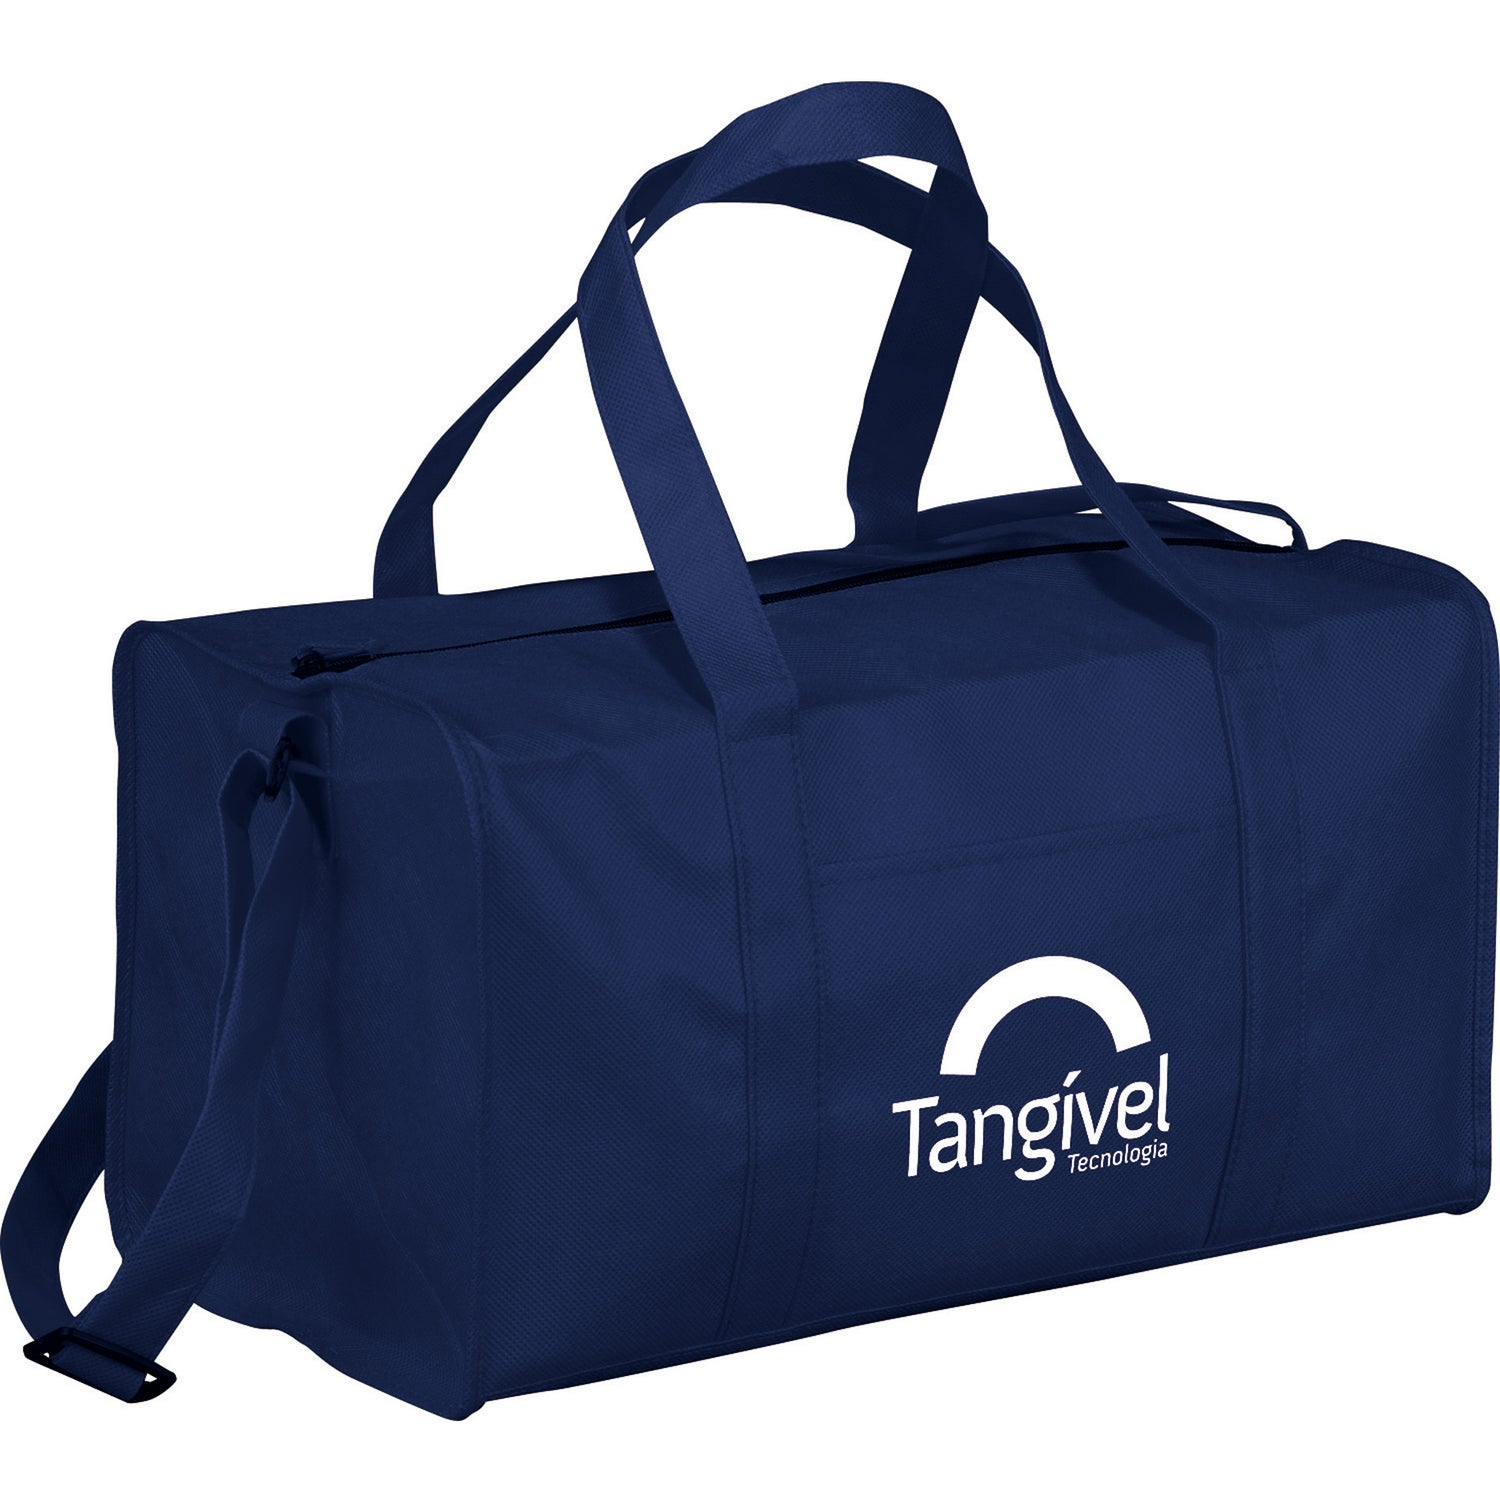 22f0b32fb590 Promotional The Popeye Non-Woven Duffel Bags with Custom Logo for  3.35 Ea.